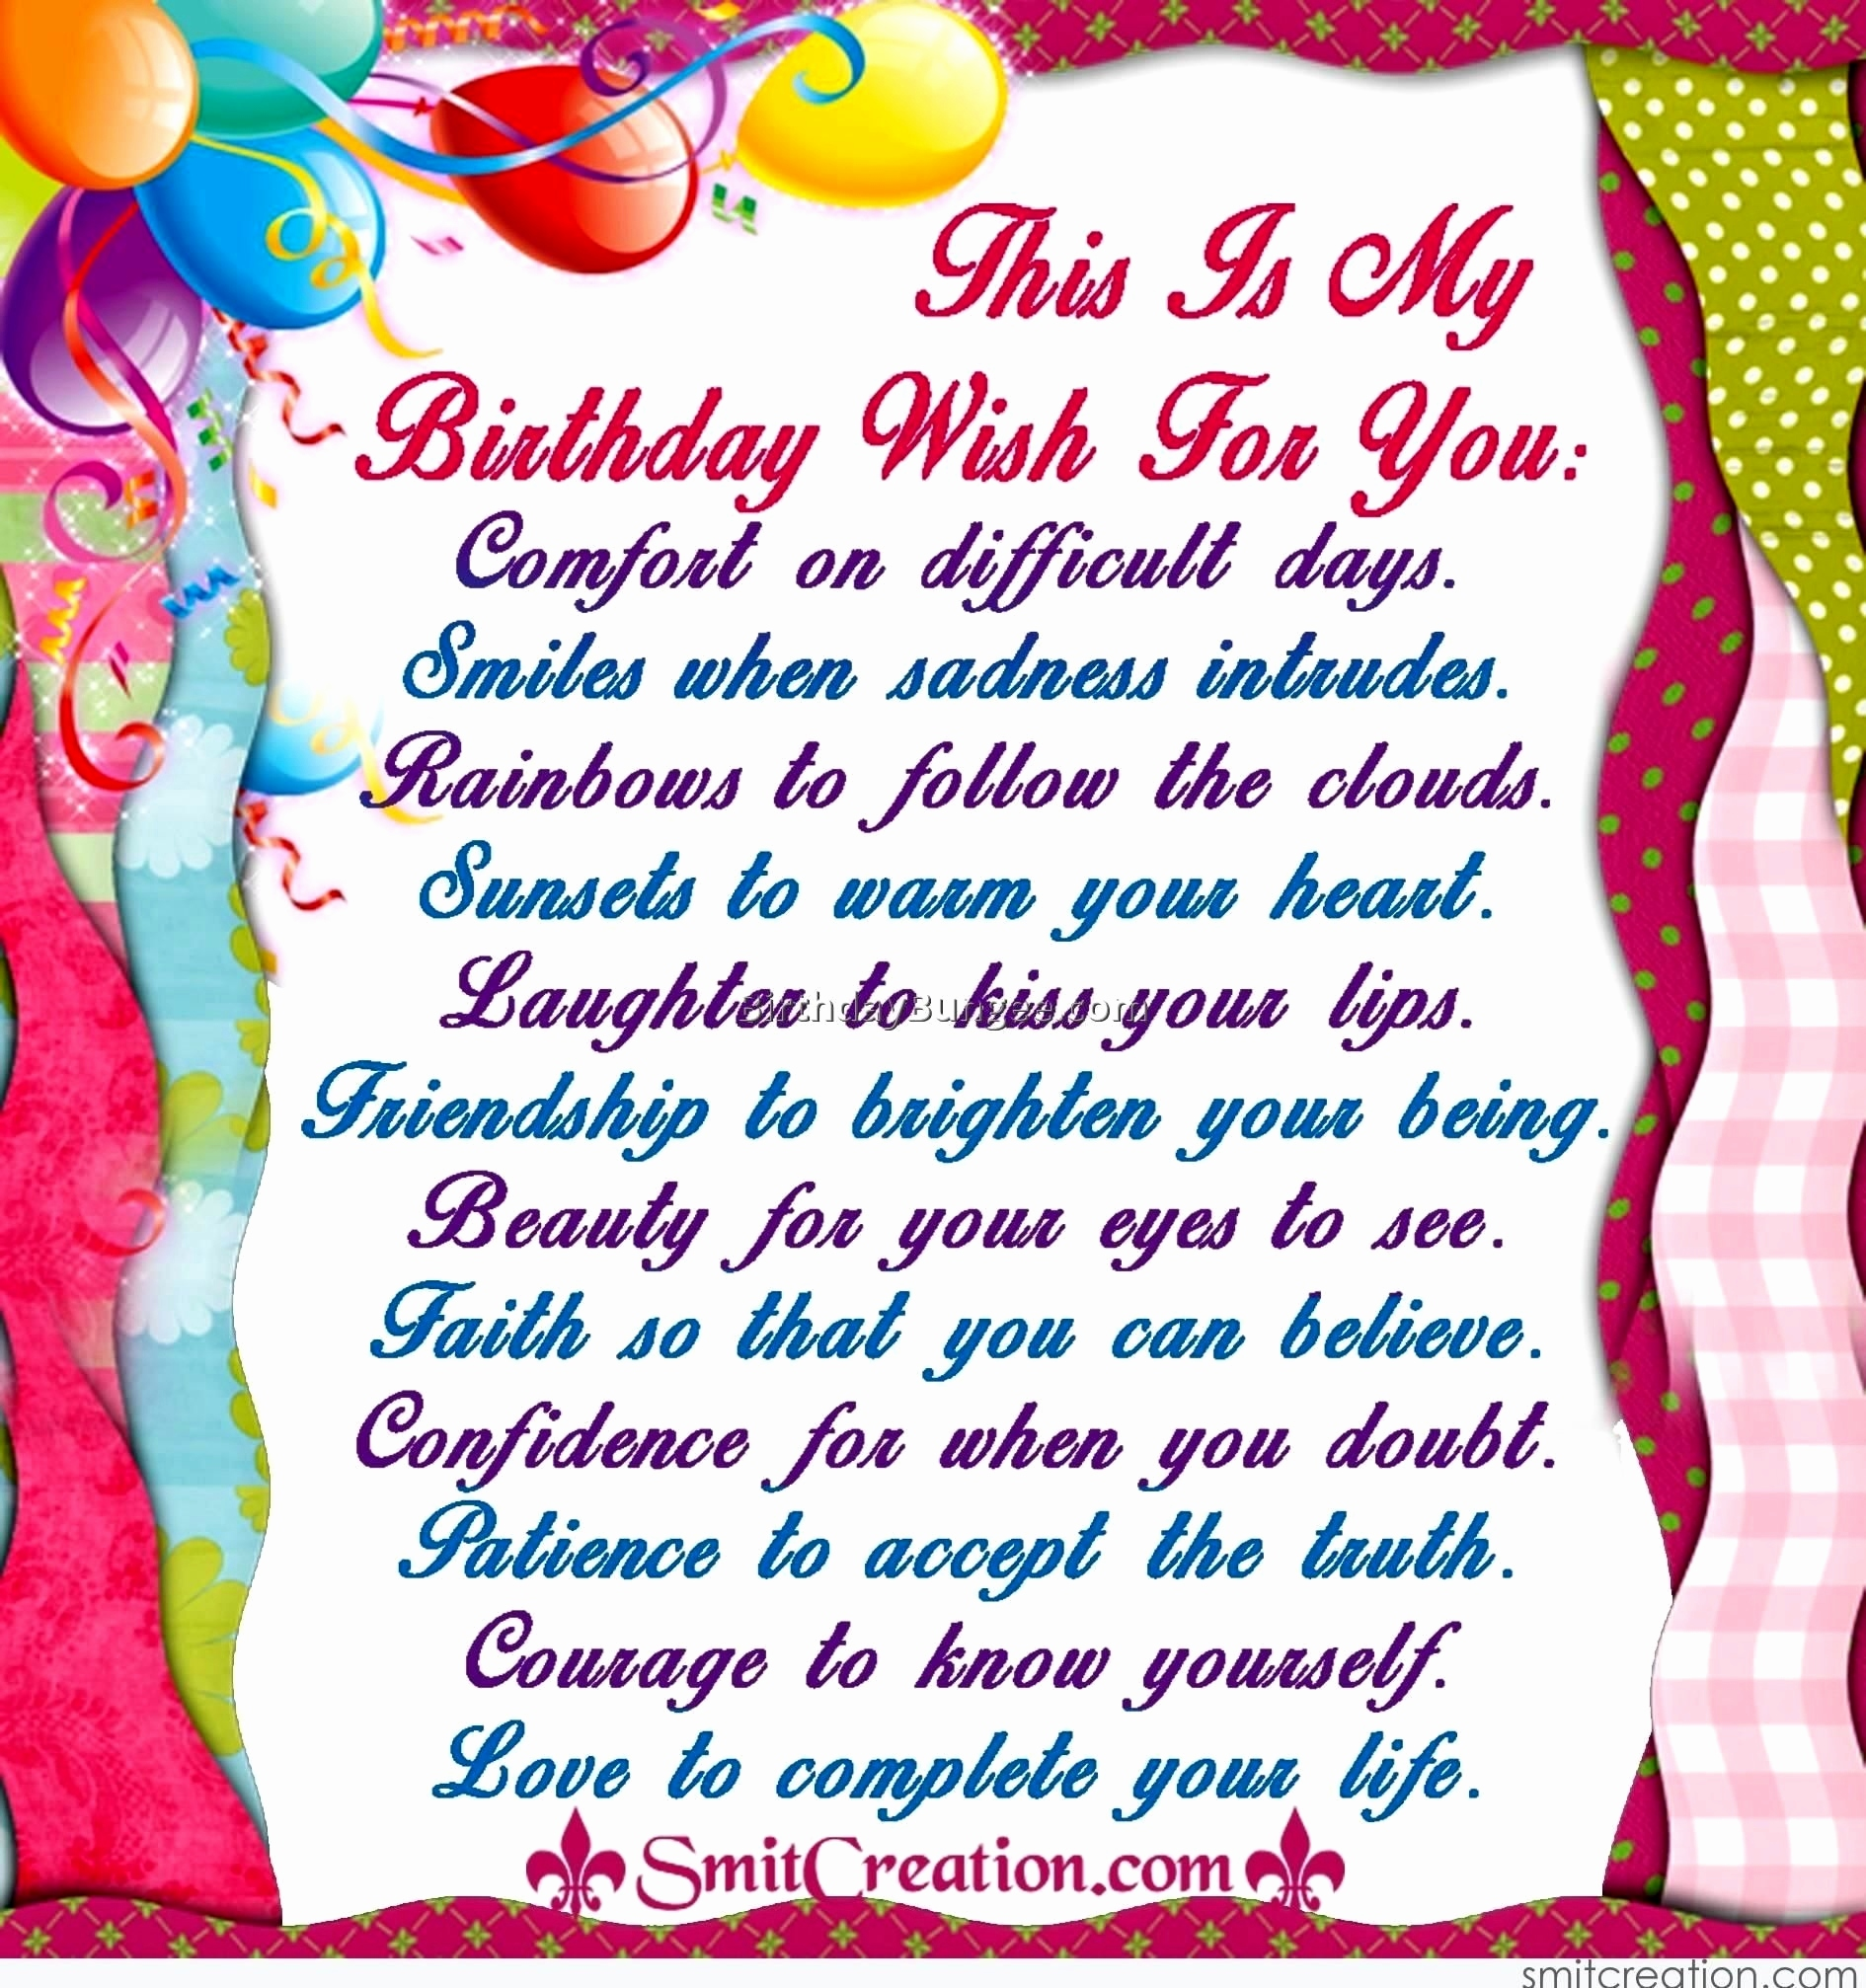 happy birthday wishes to my daughter ; happy-birthday-cards-for-my-son-inspirational-birthday-card-for-my-daughter-elegant-18th-birthday-wishes-for-of-happy-birthday-cards-for-my-son